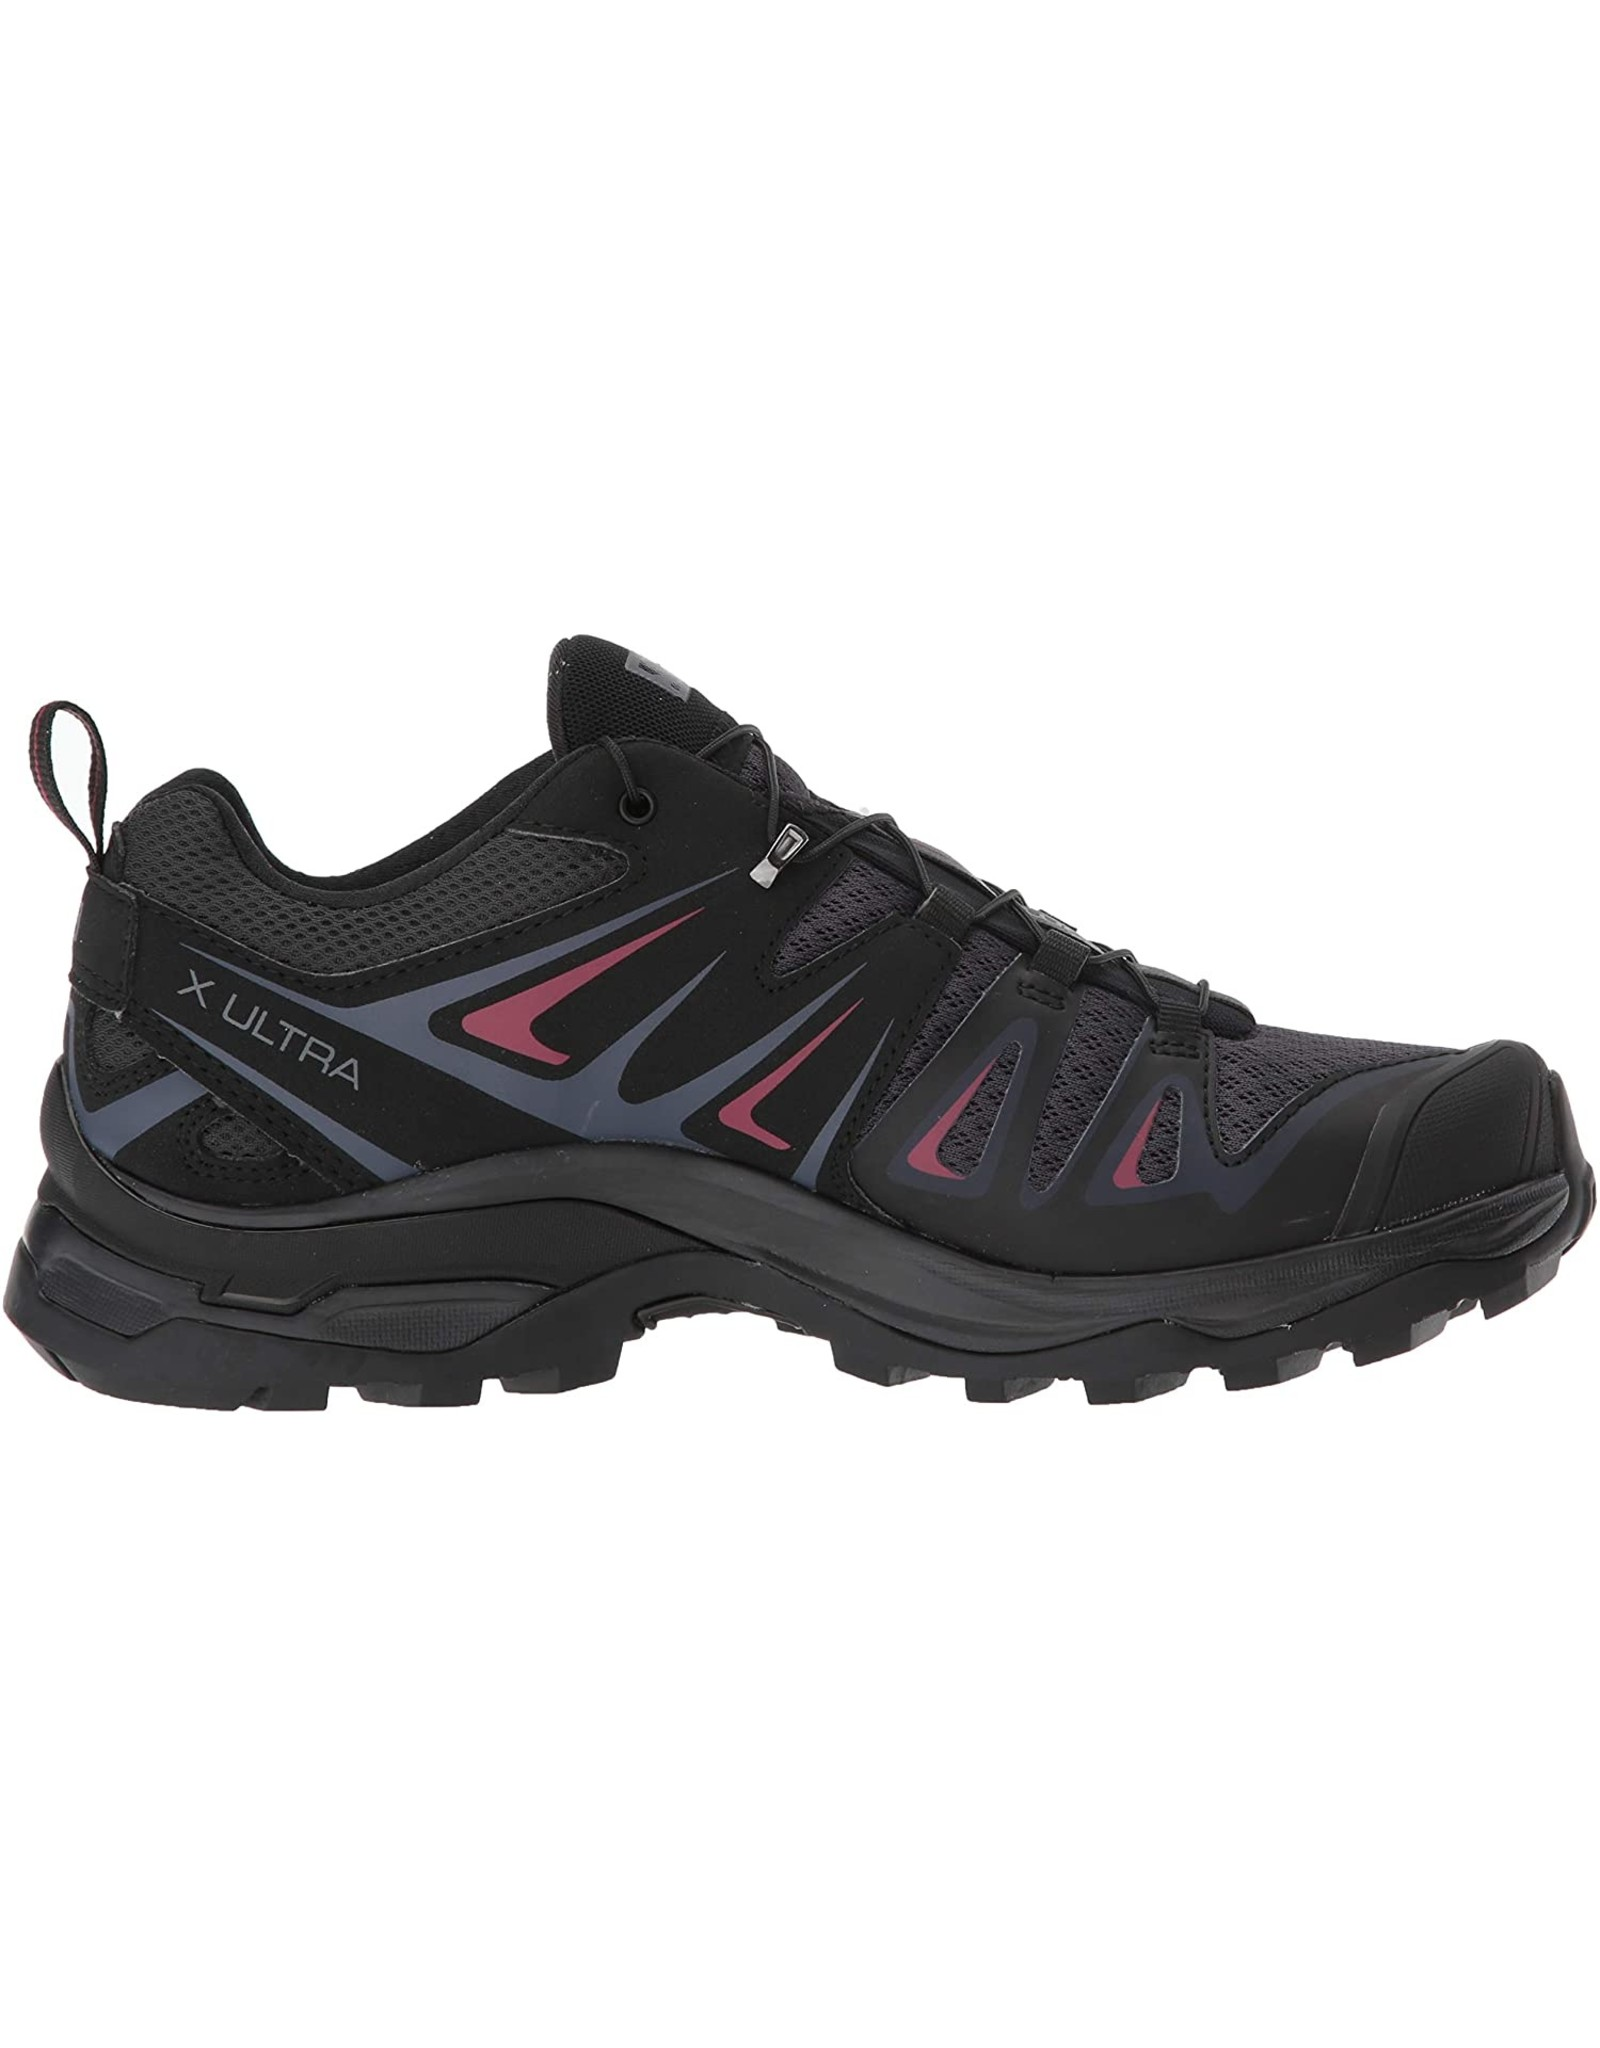 Salomon Salomon X Ultra 3 W Graphite/Blk/Beet Red